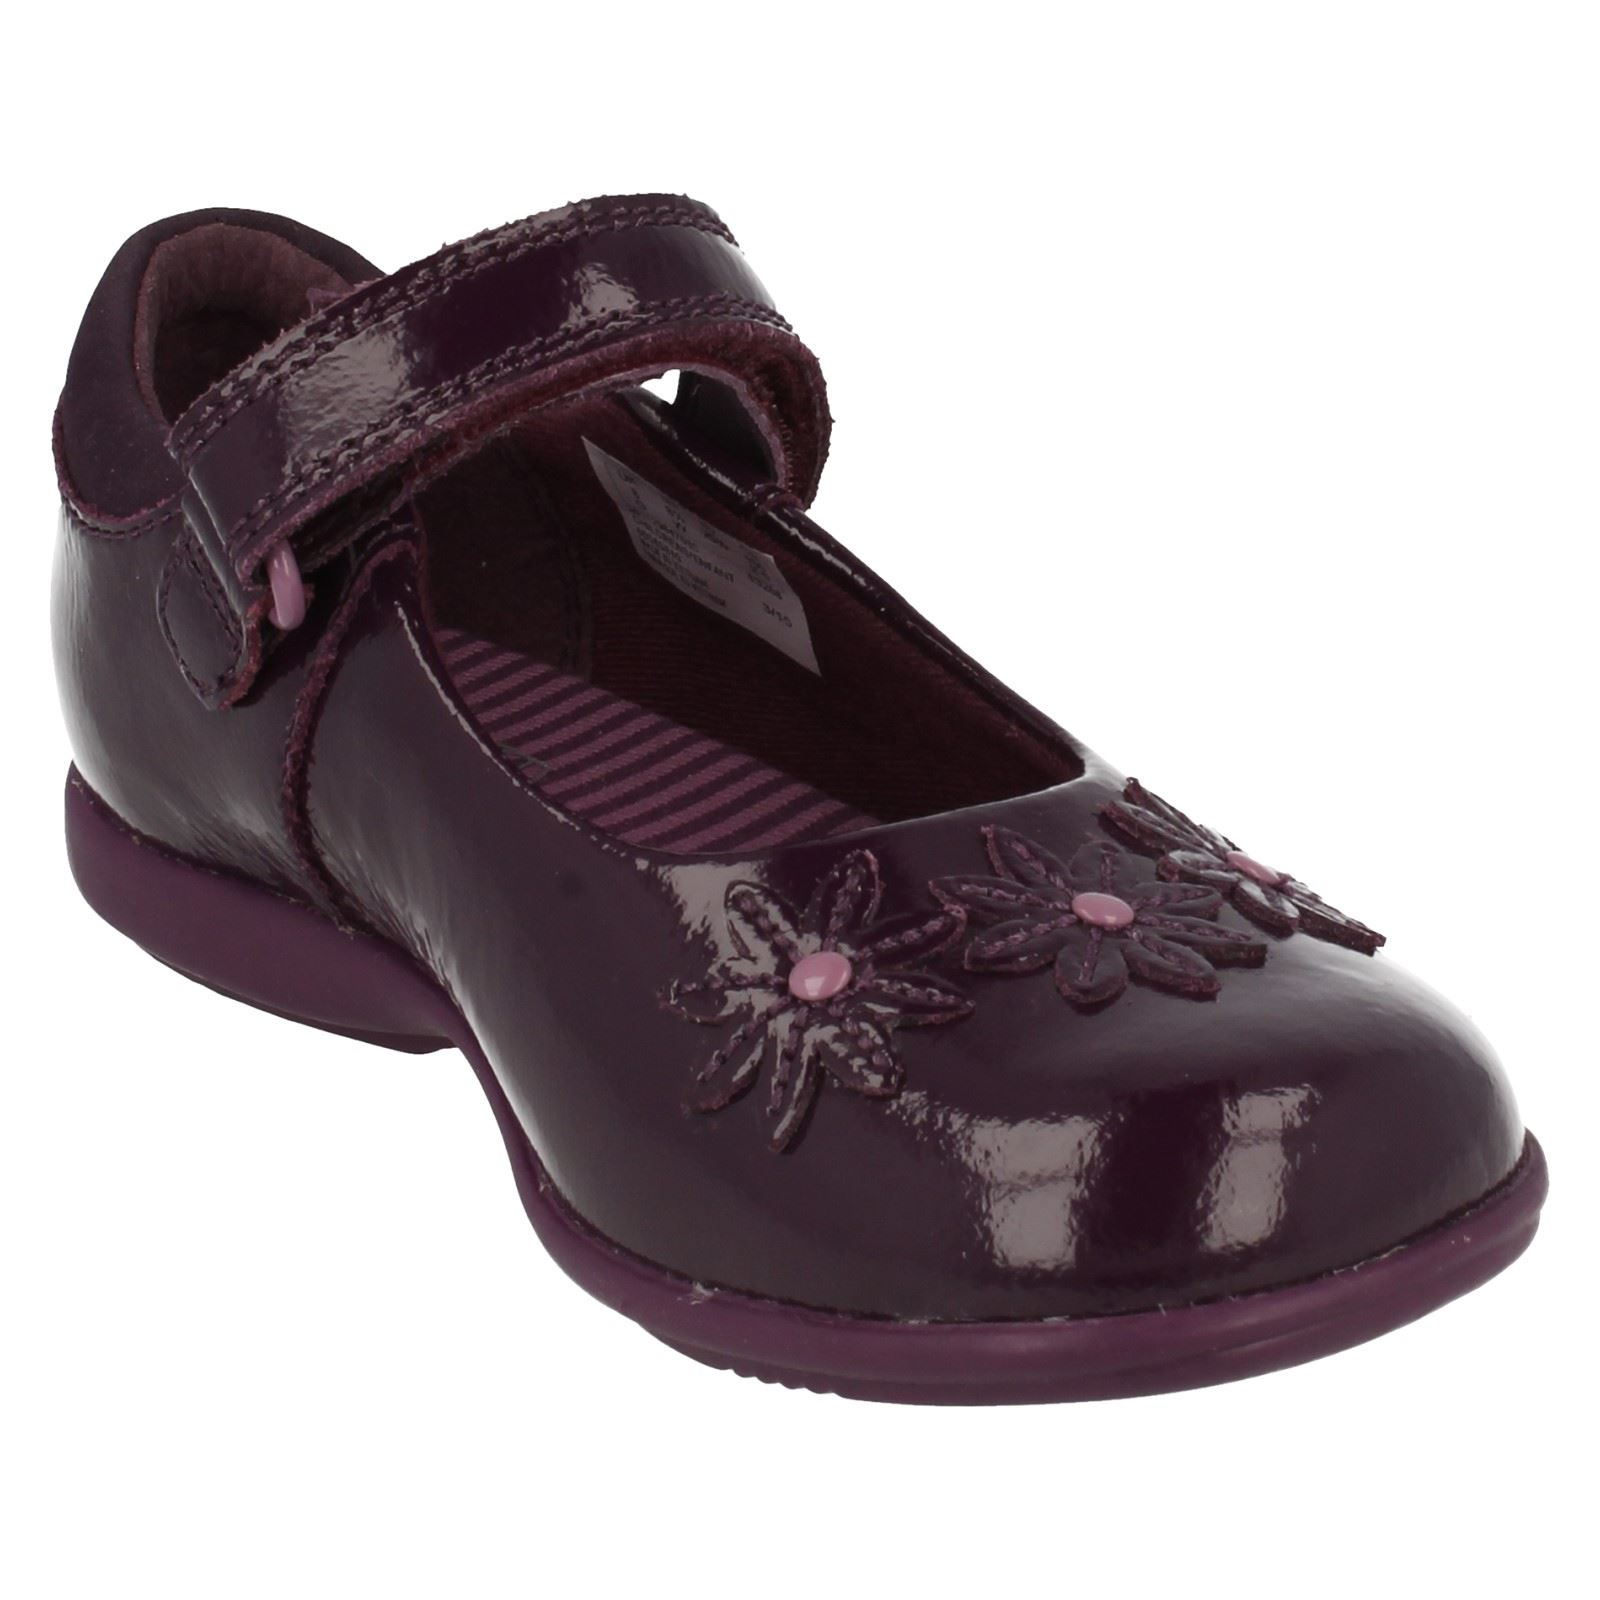 clarks patent leather light shoes